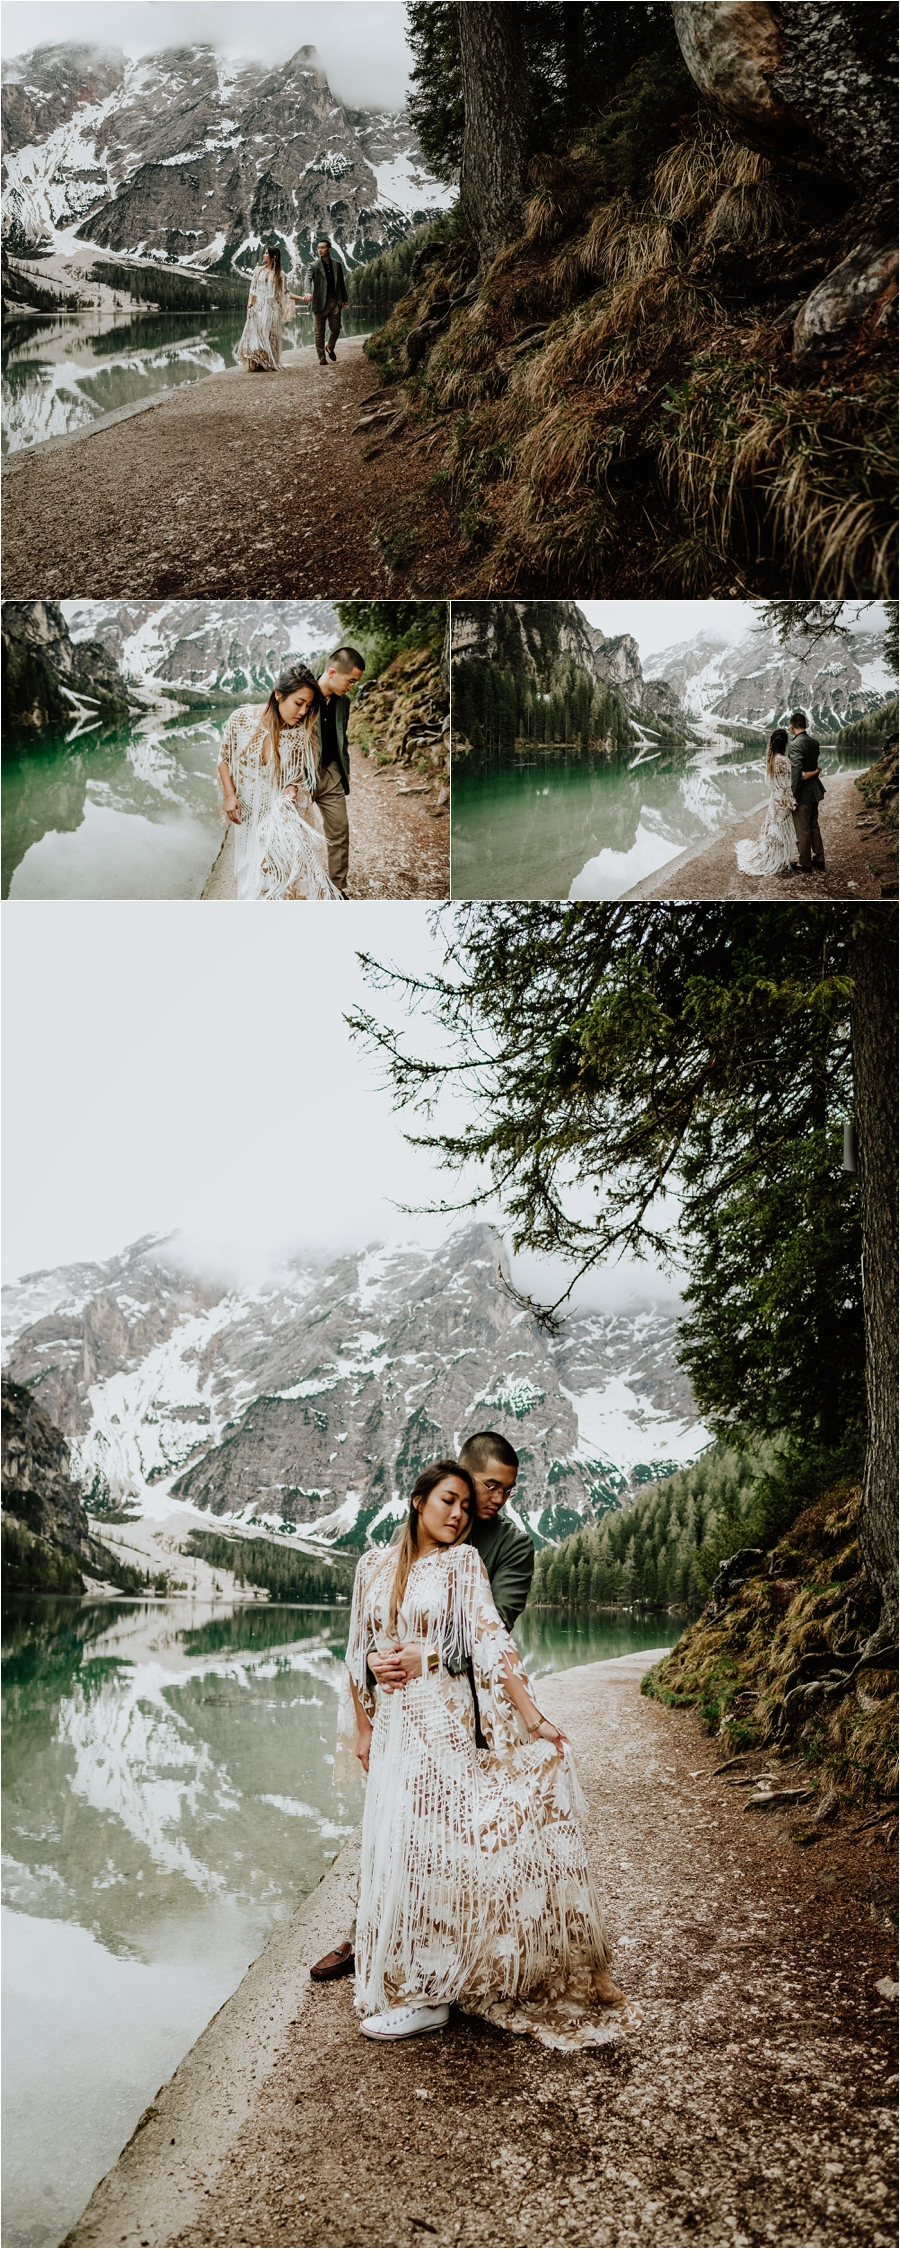 Bohemian pre-wedding engagement shoot in the Dolomites with A Rue De Seine Wedding Dress - Photos by Wild Connections Photography